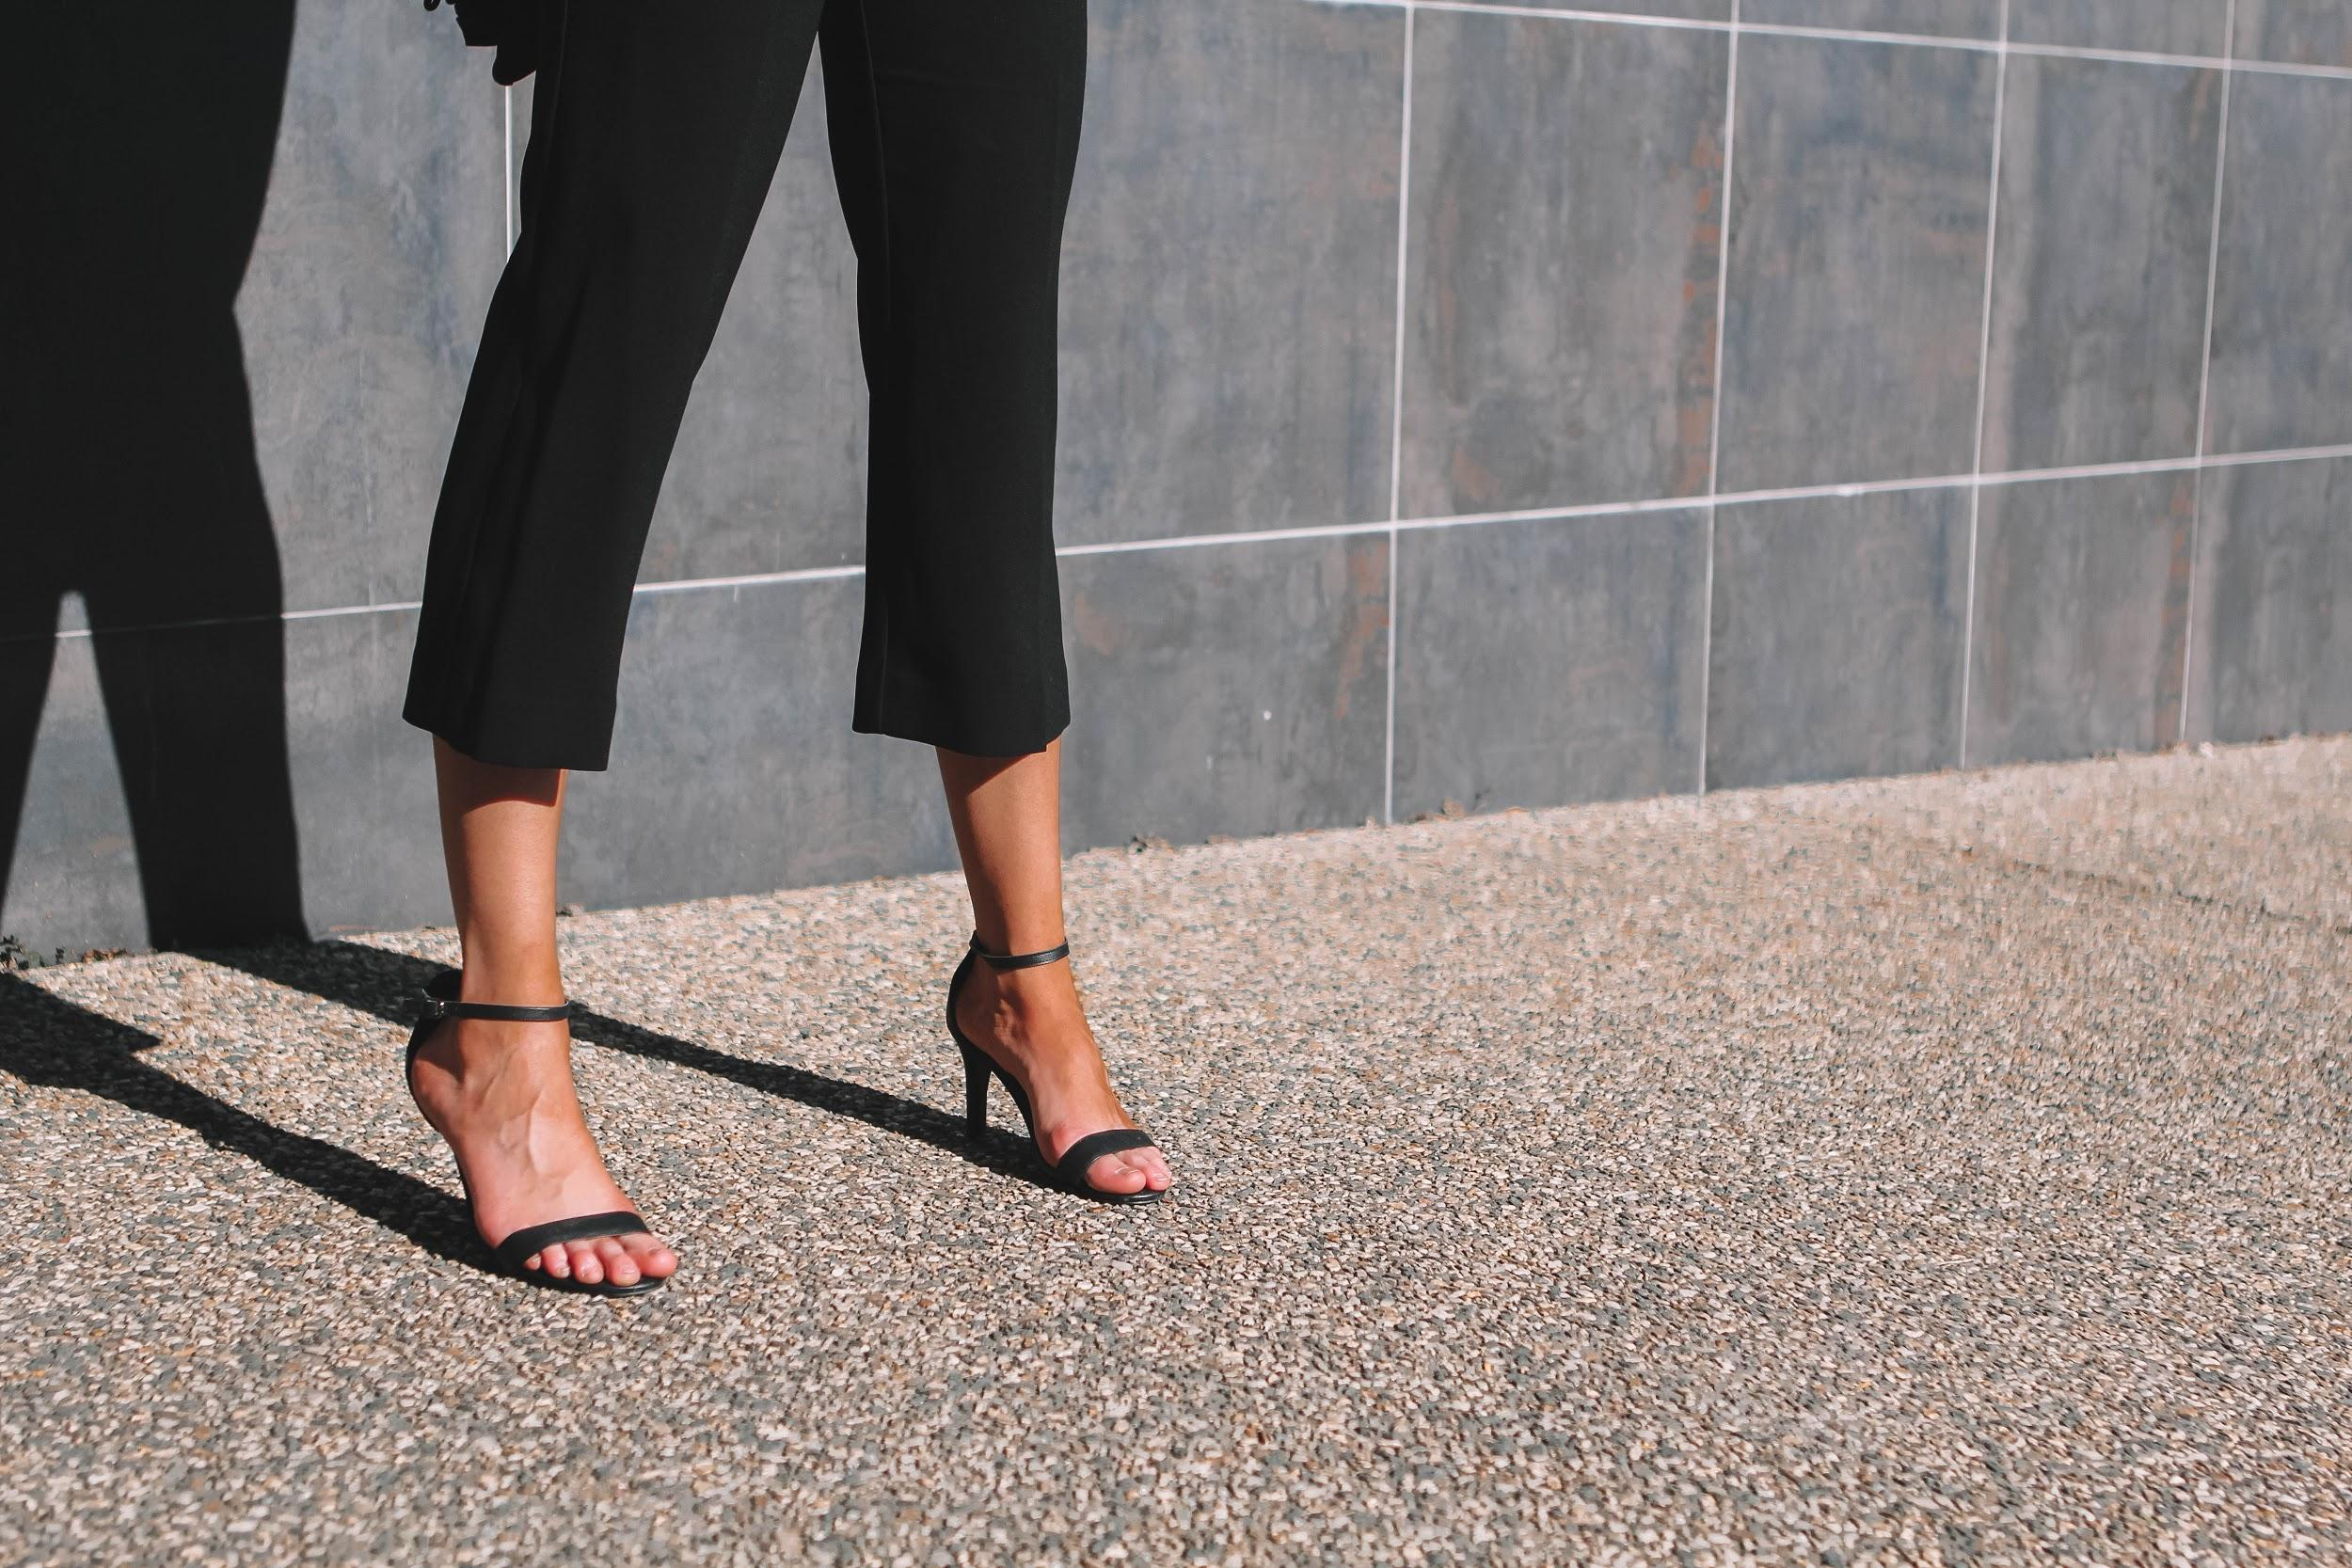 Minimalist black heels | A Week Of Consciously Curated Outfits With Amber Boyers, Founder Of BAIIA And The Conscious Cut on The Good Trade